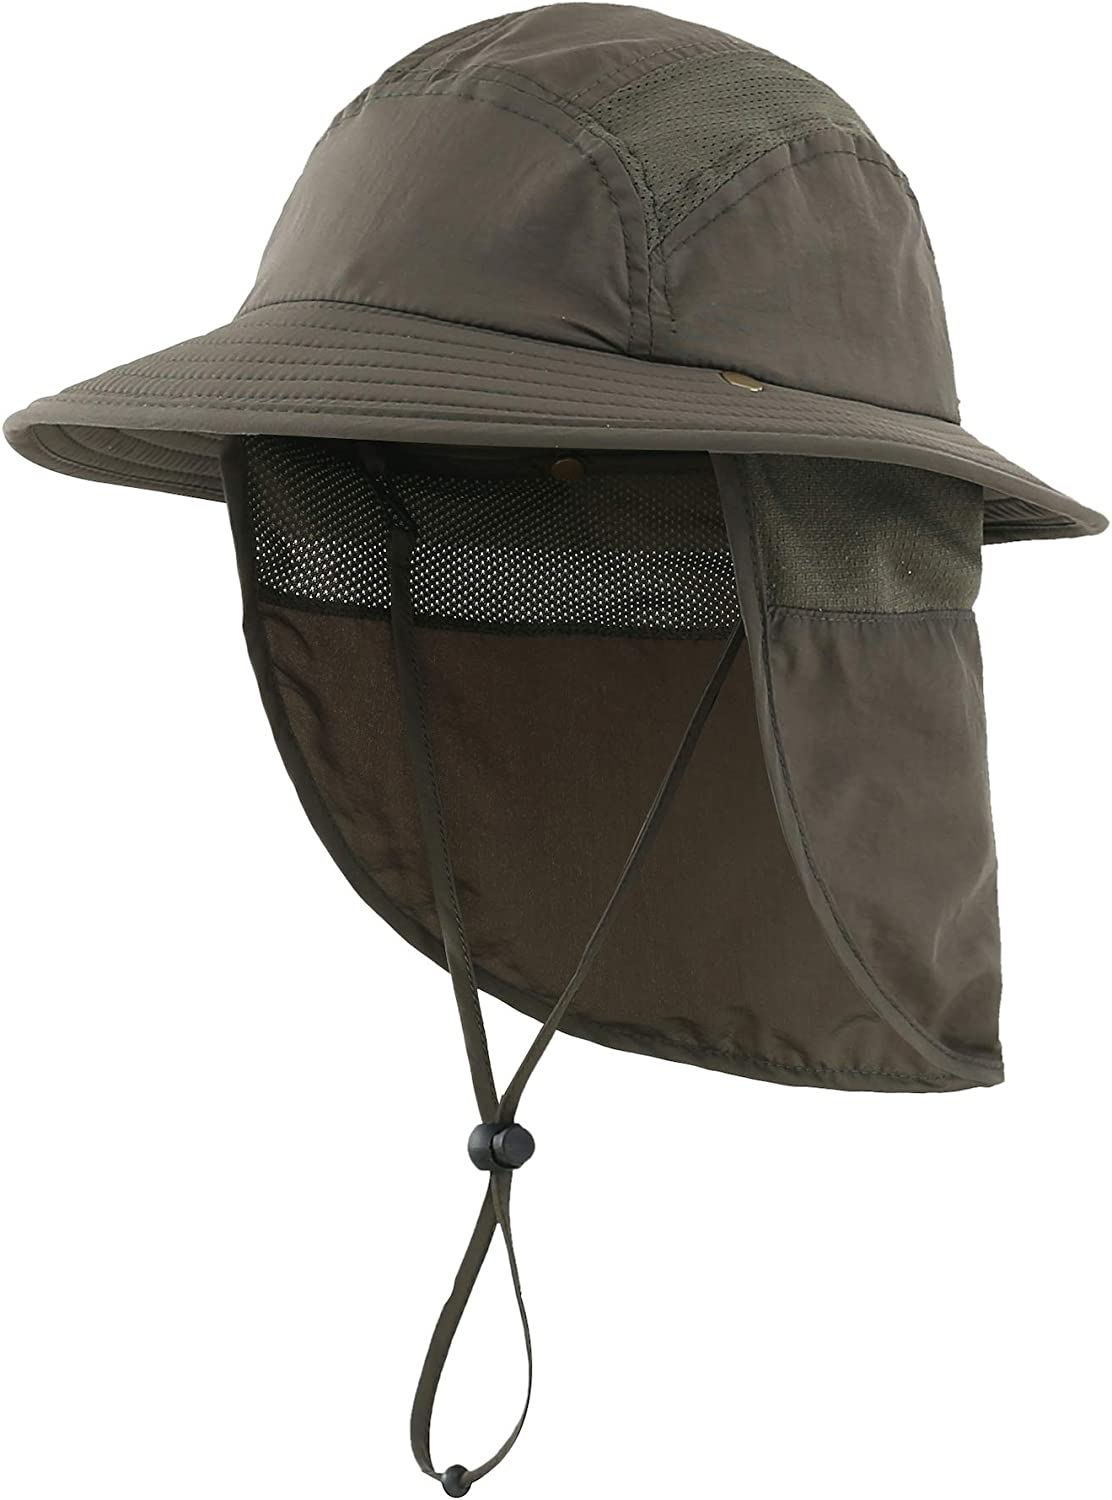 The Best Boys Cooling Hat